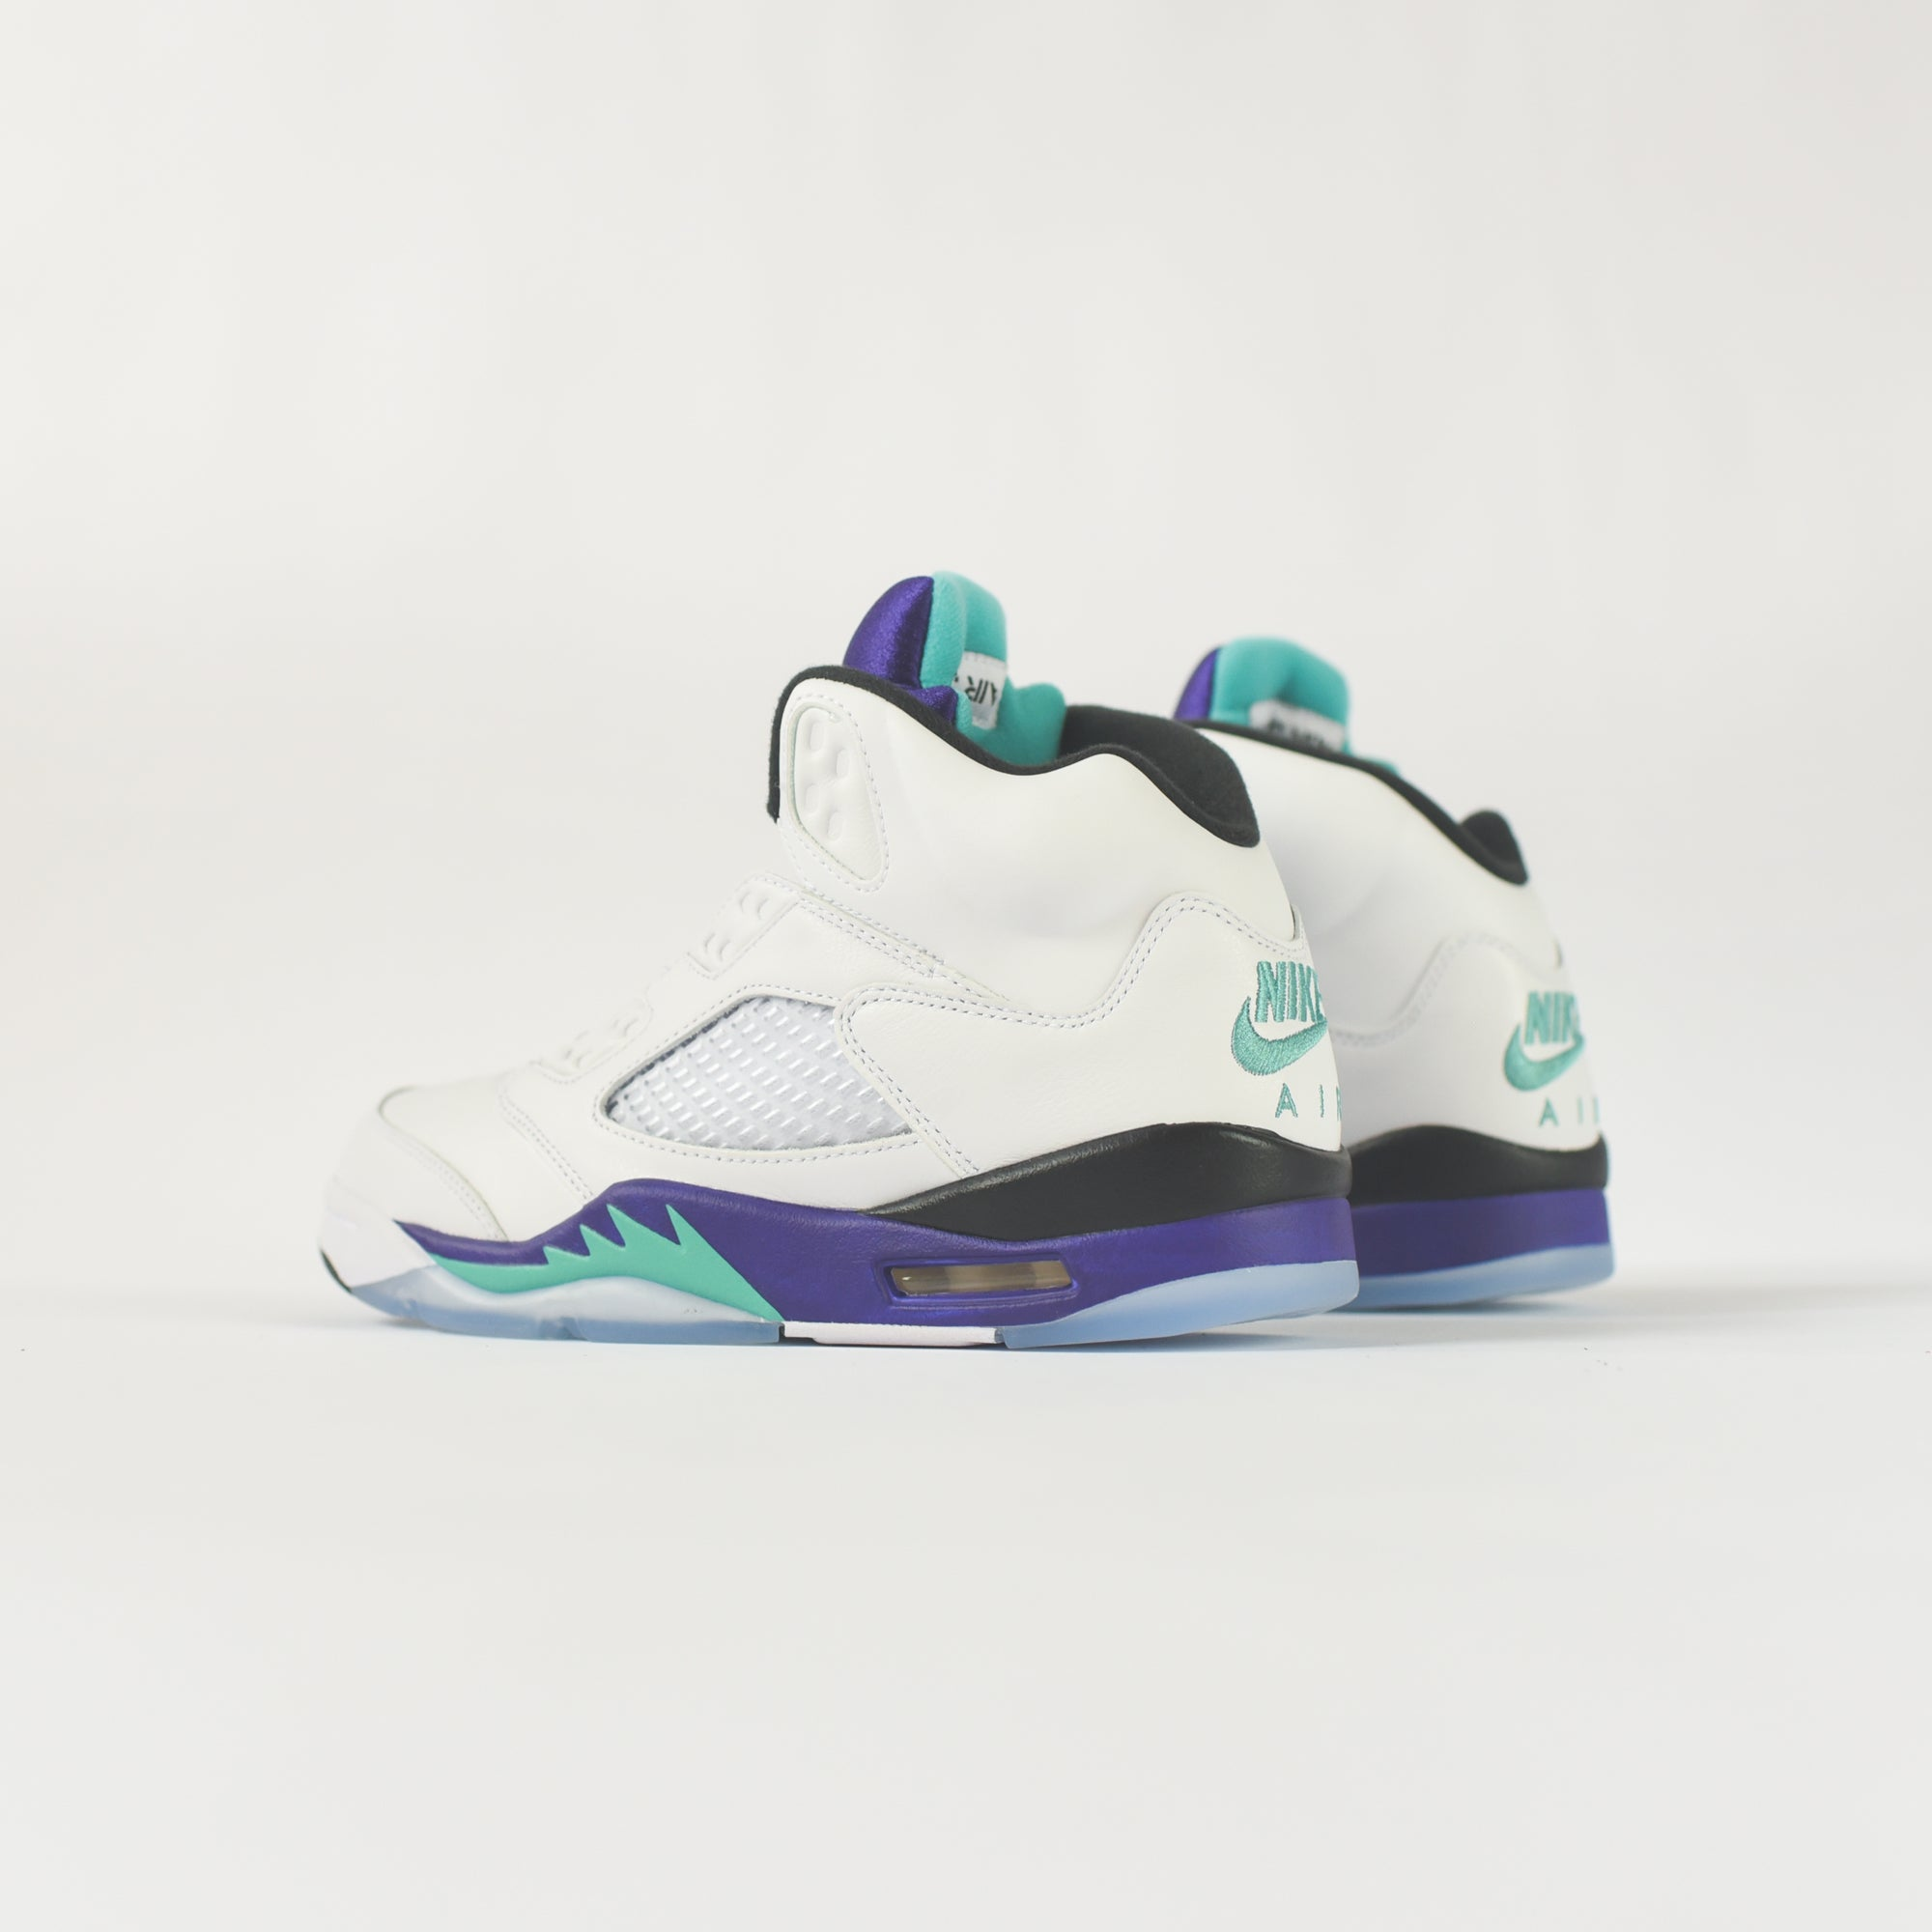 best sneakers 533de 63a29 Nike Air Jordan 5 Retro NRG - White   New Emerald   Grape Ice – Kith